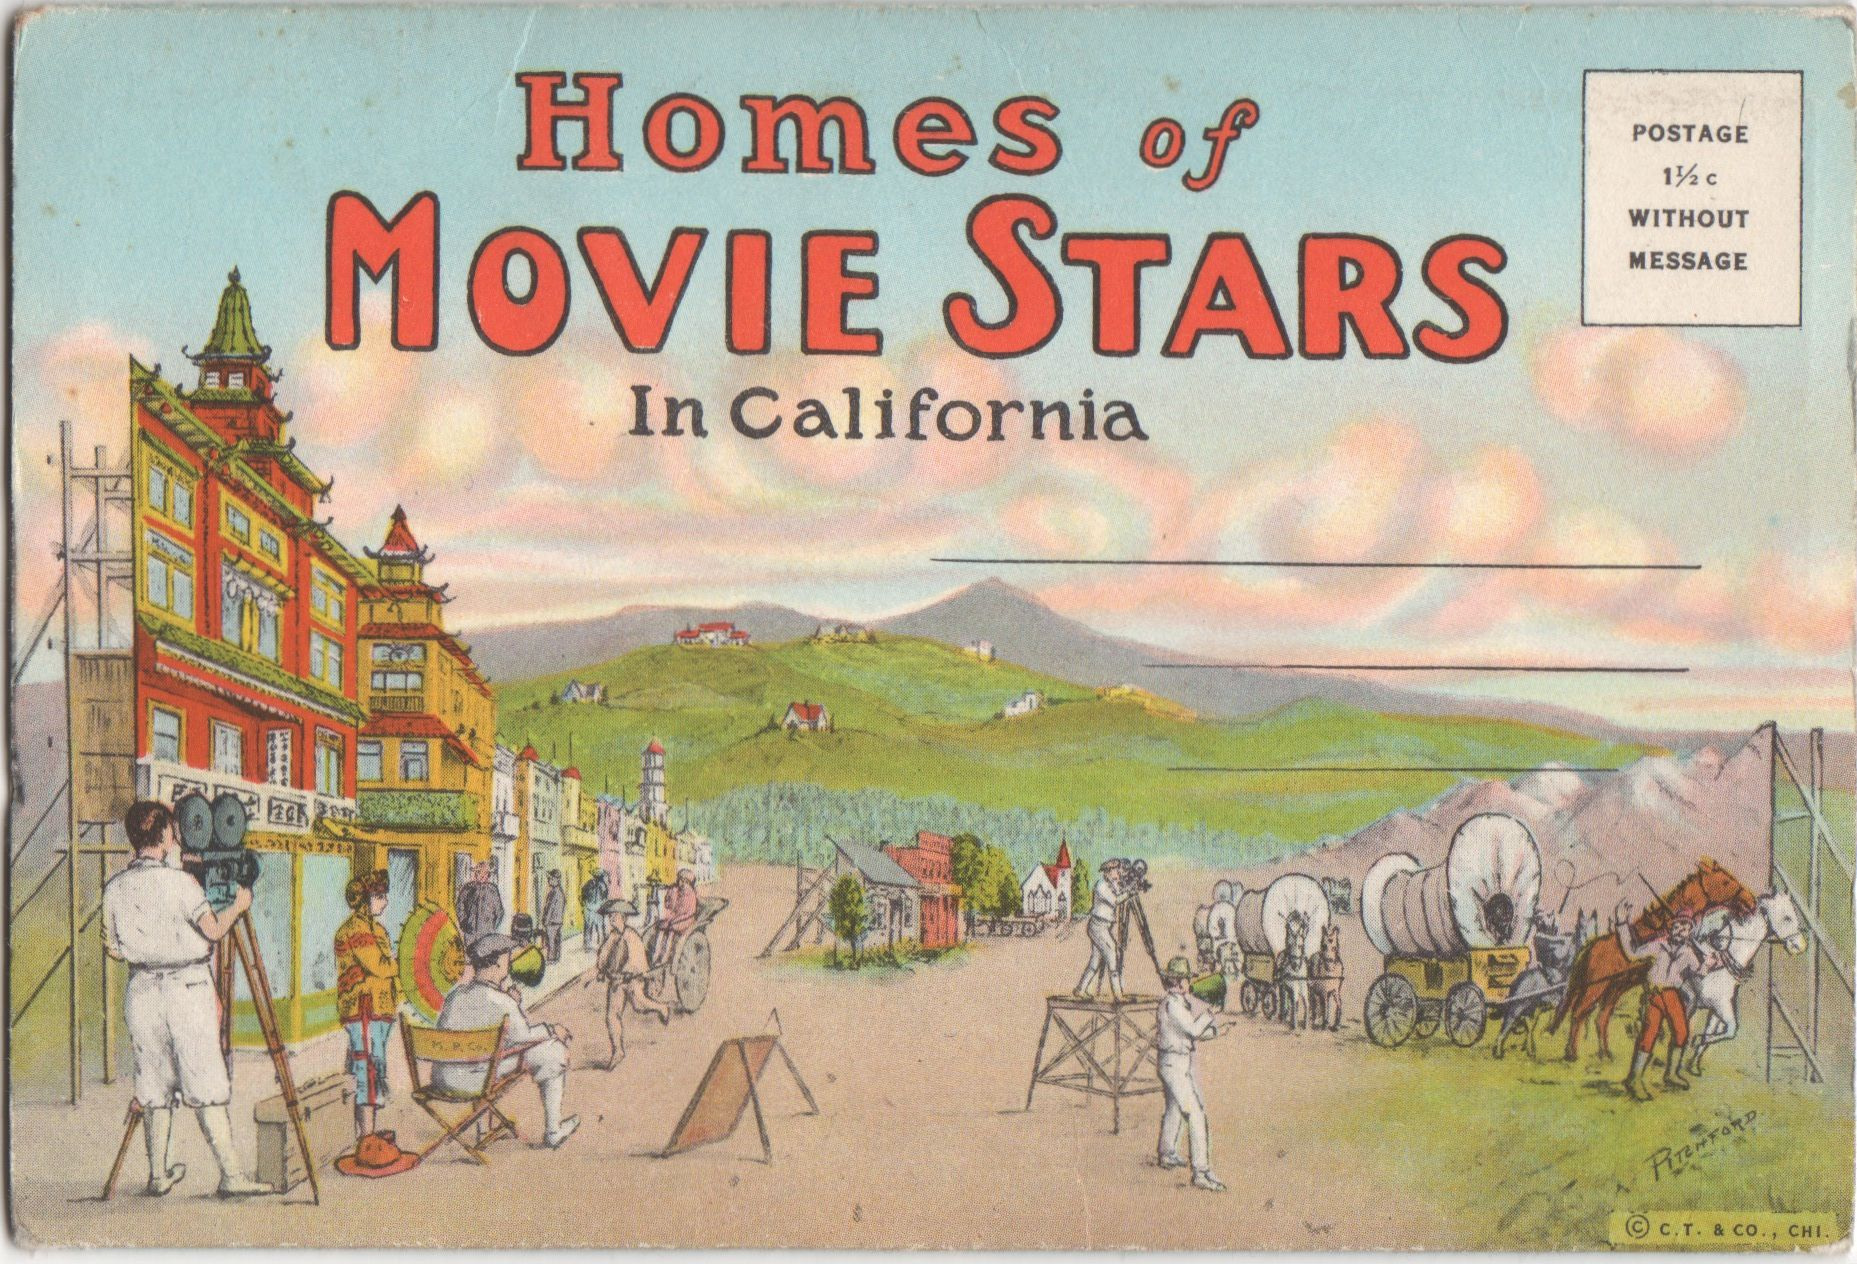 Beverly Hills Movie Star Home postcards